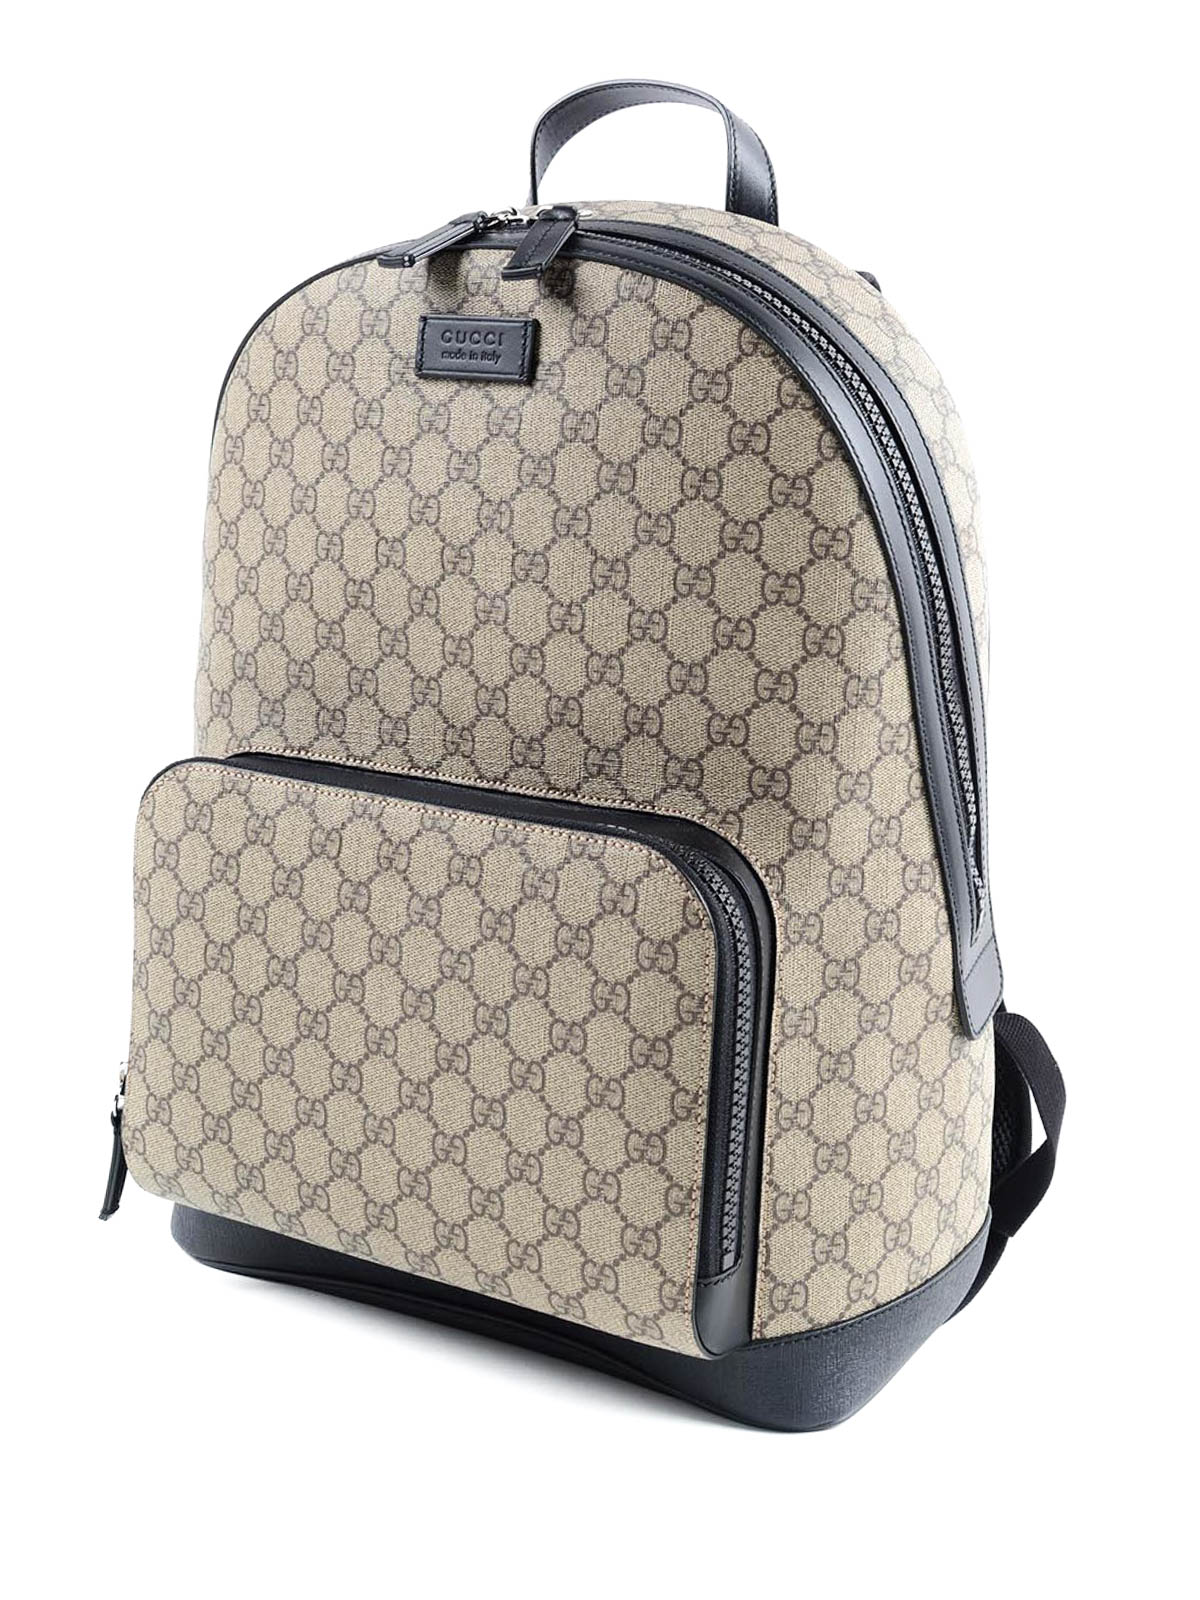 59ea3d12b3c Gucci - GG Supreme backpack - backpacks - 406370 KLQAX 9772